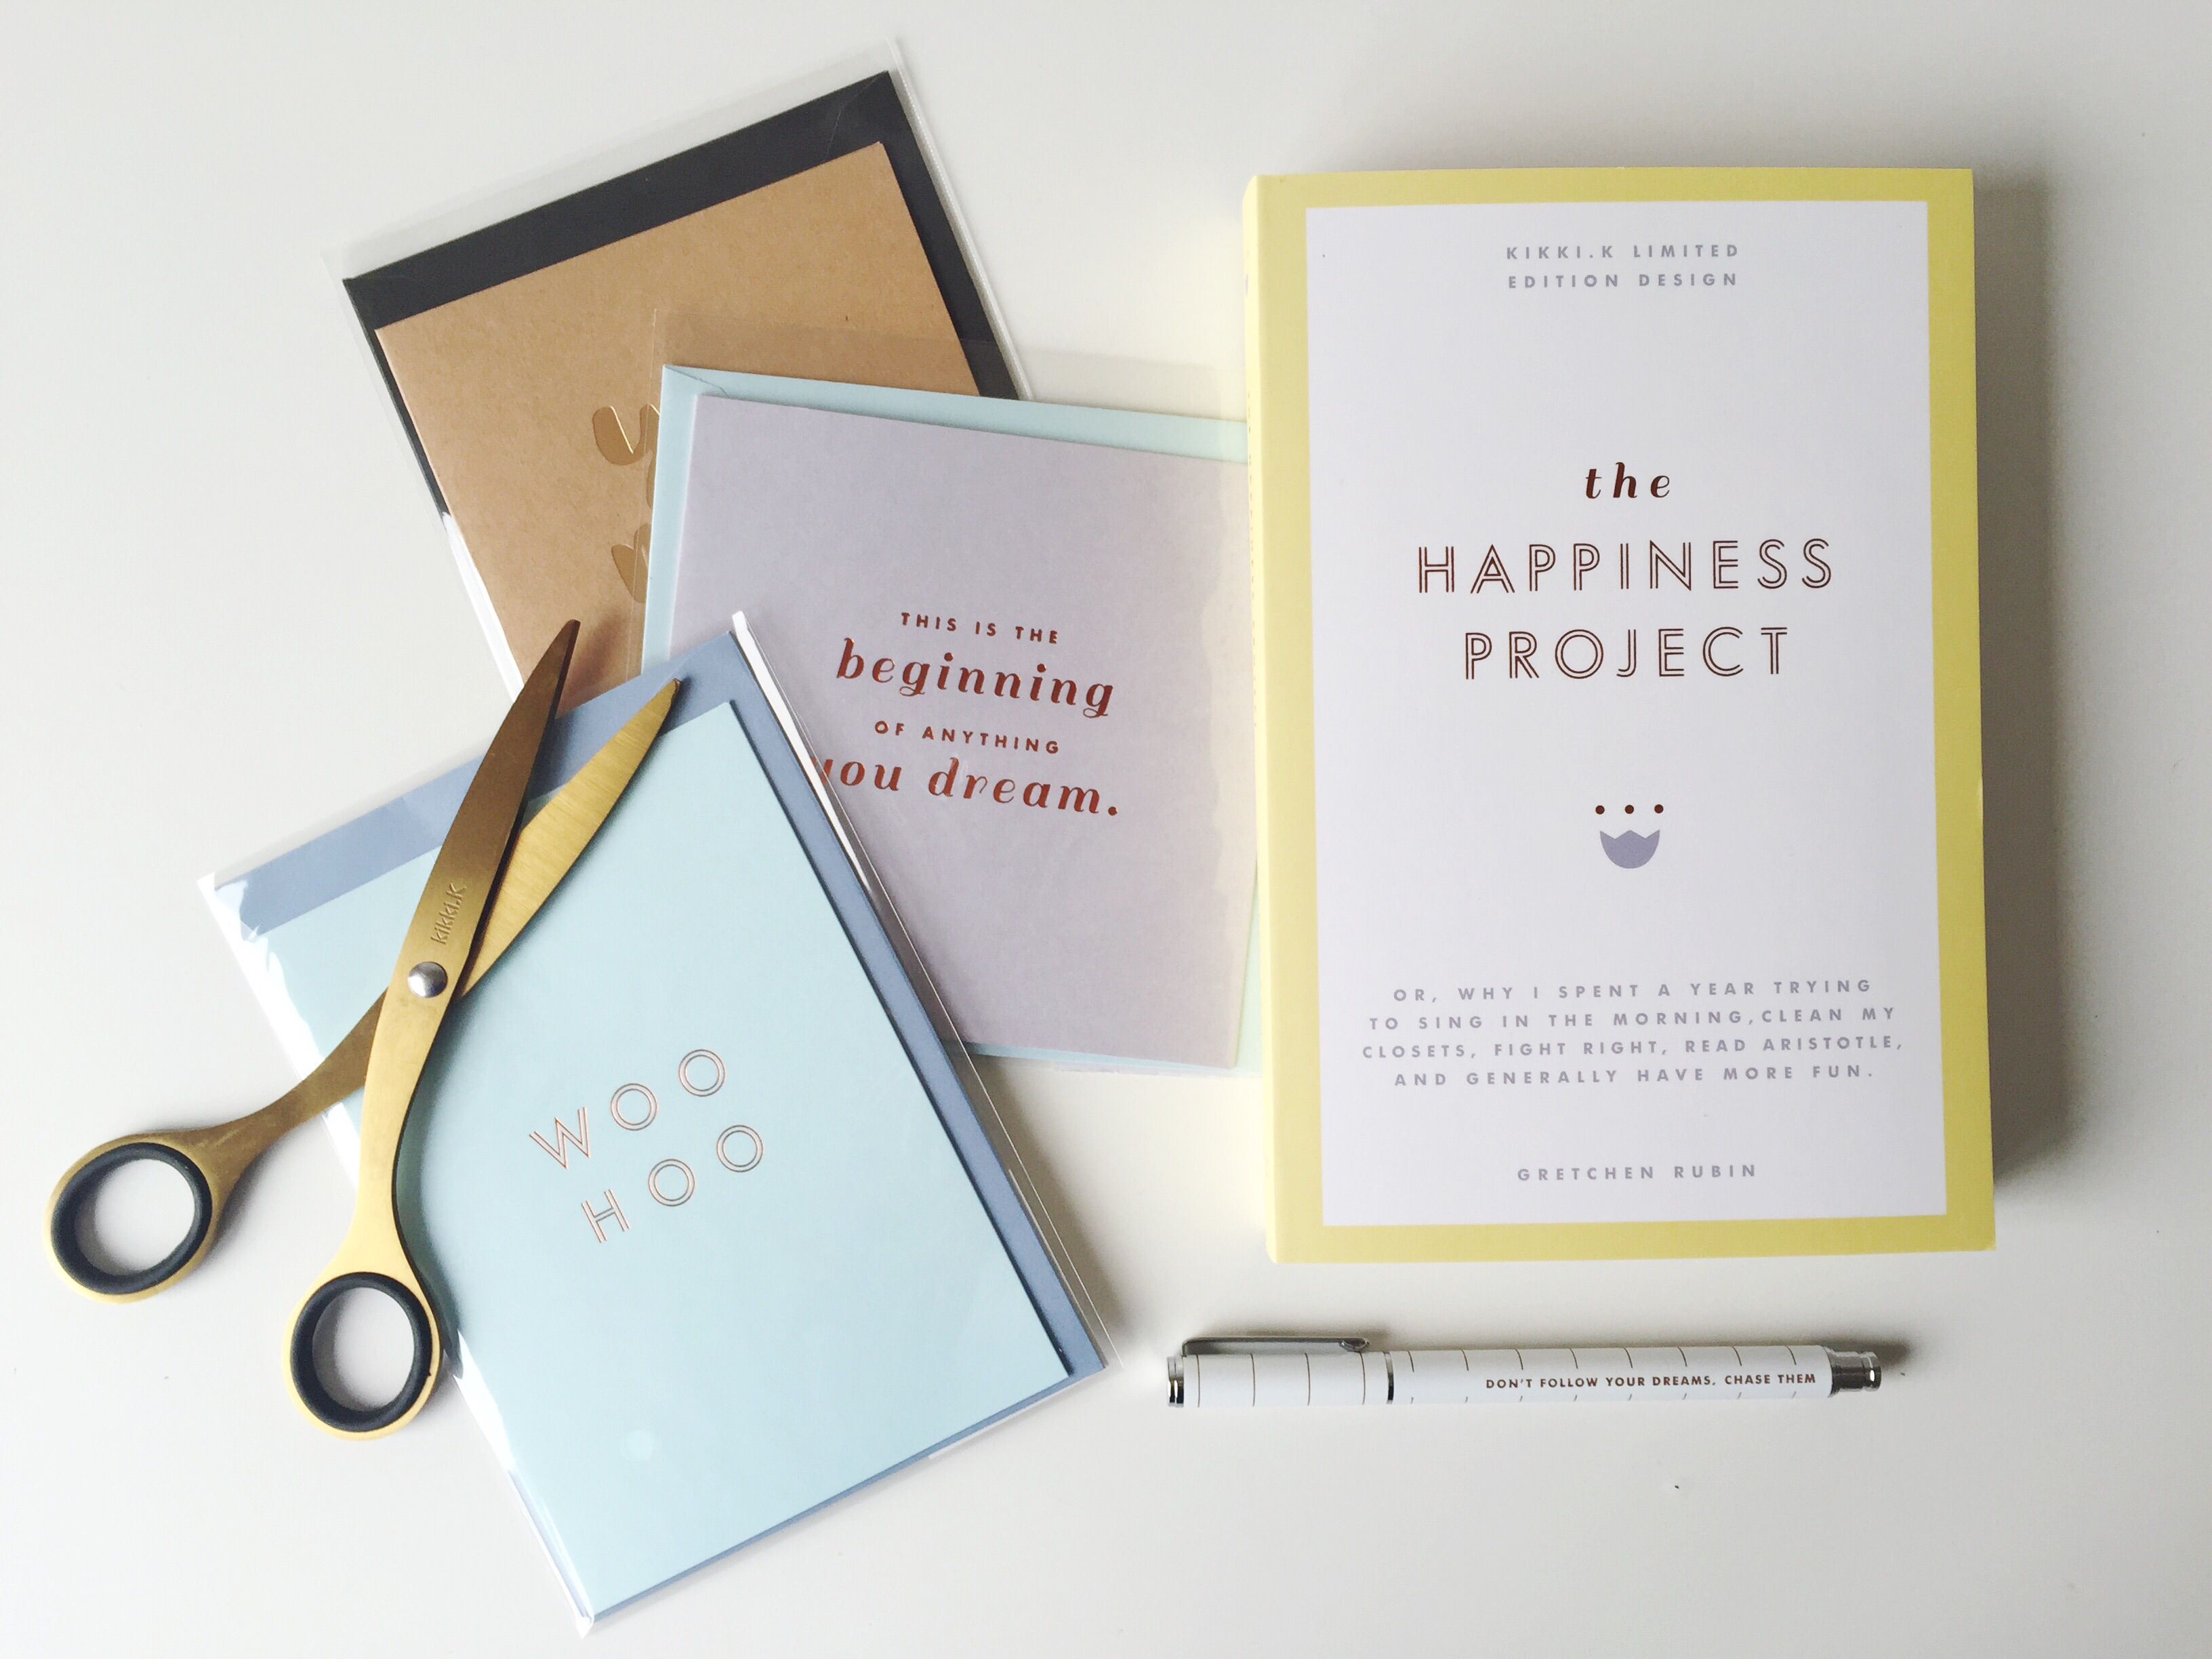 3 cards, Happiness Prject book, gold scissors and a pen laid out on a white desk